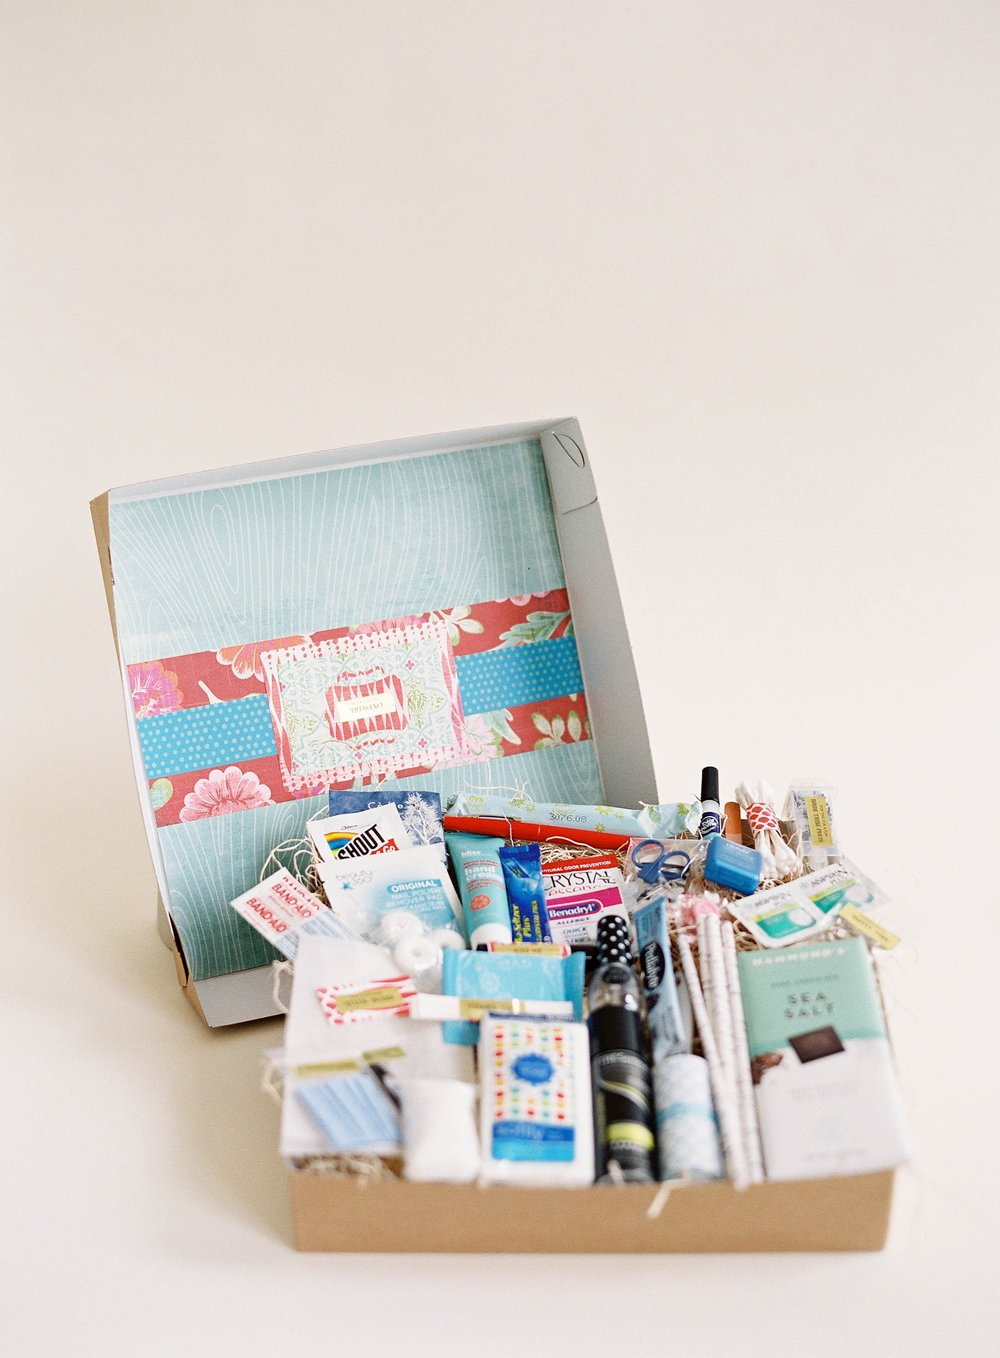 In Case of Emergency Bridal Suite Gift Box by Gilded Gifts photo 1.jpg